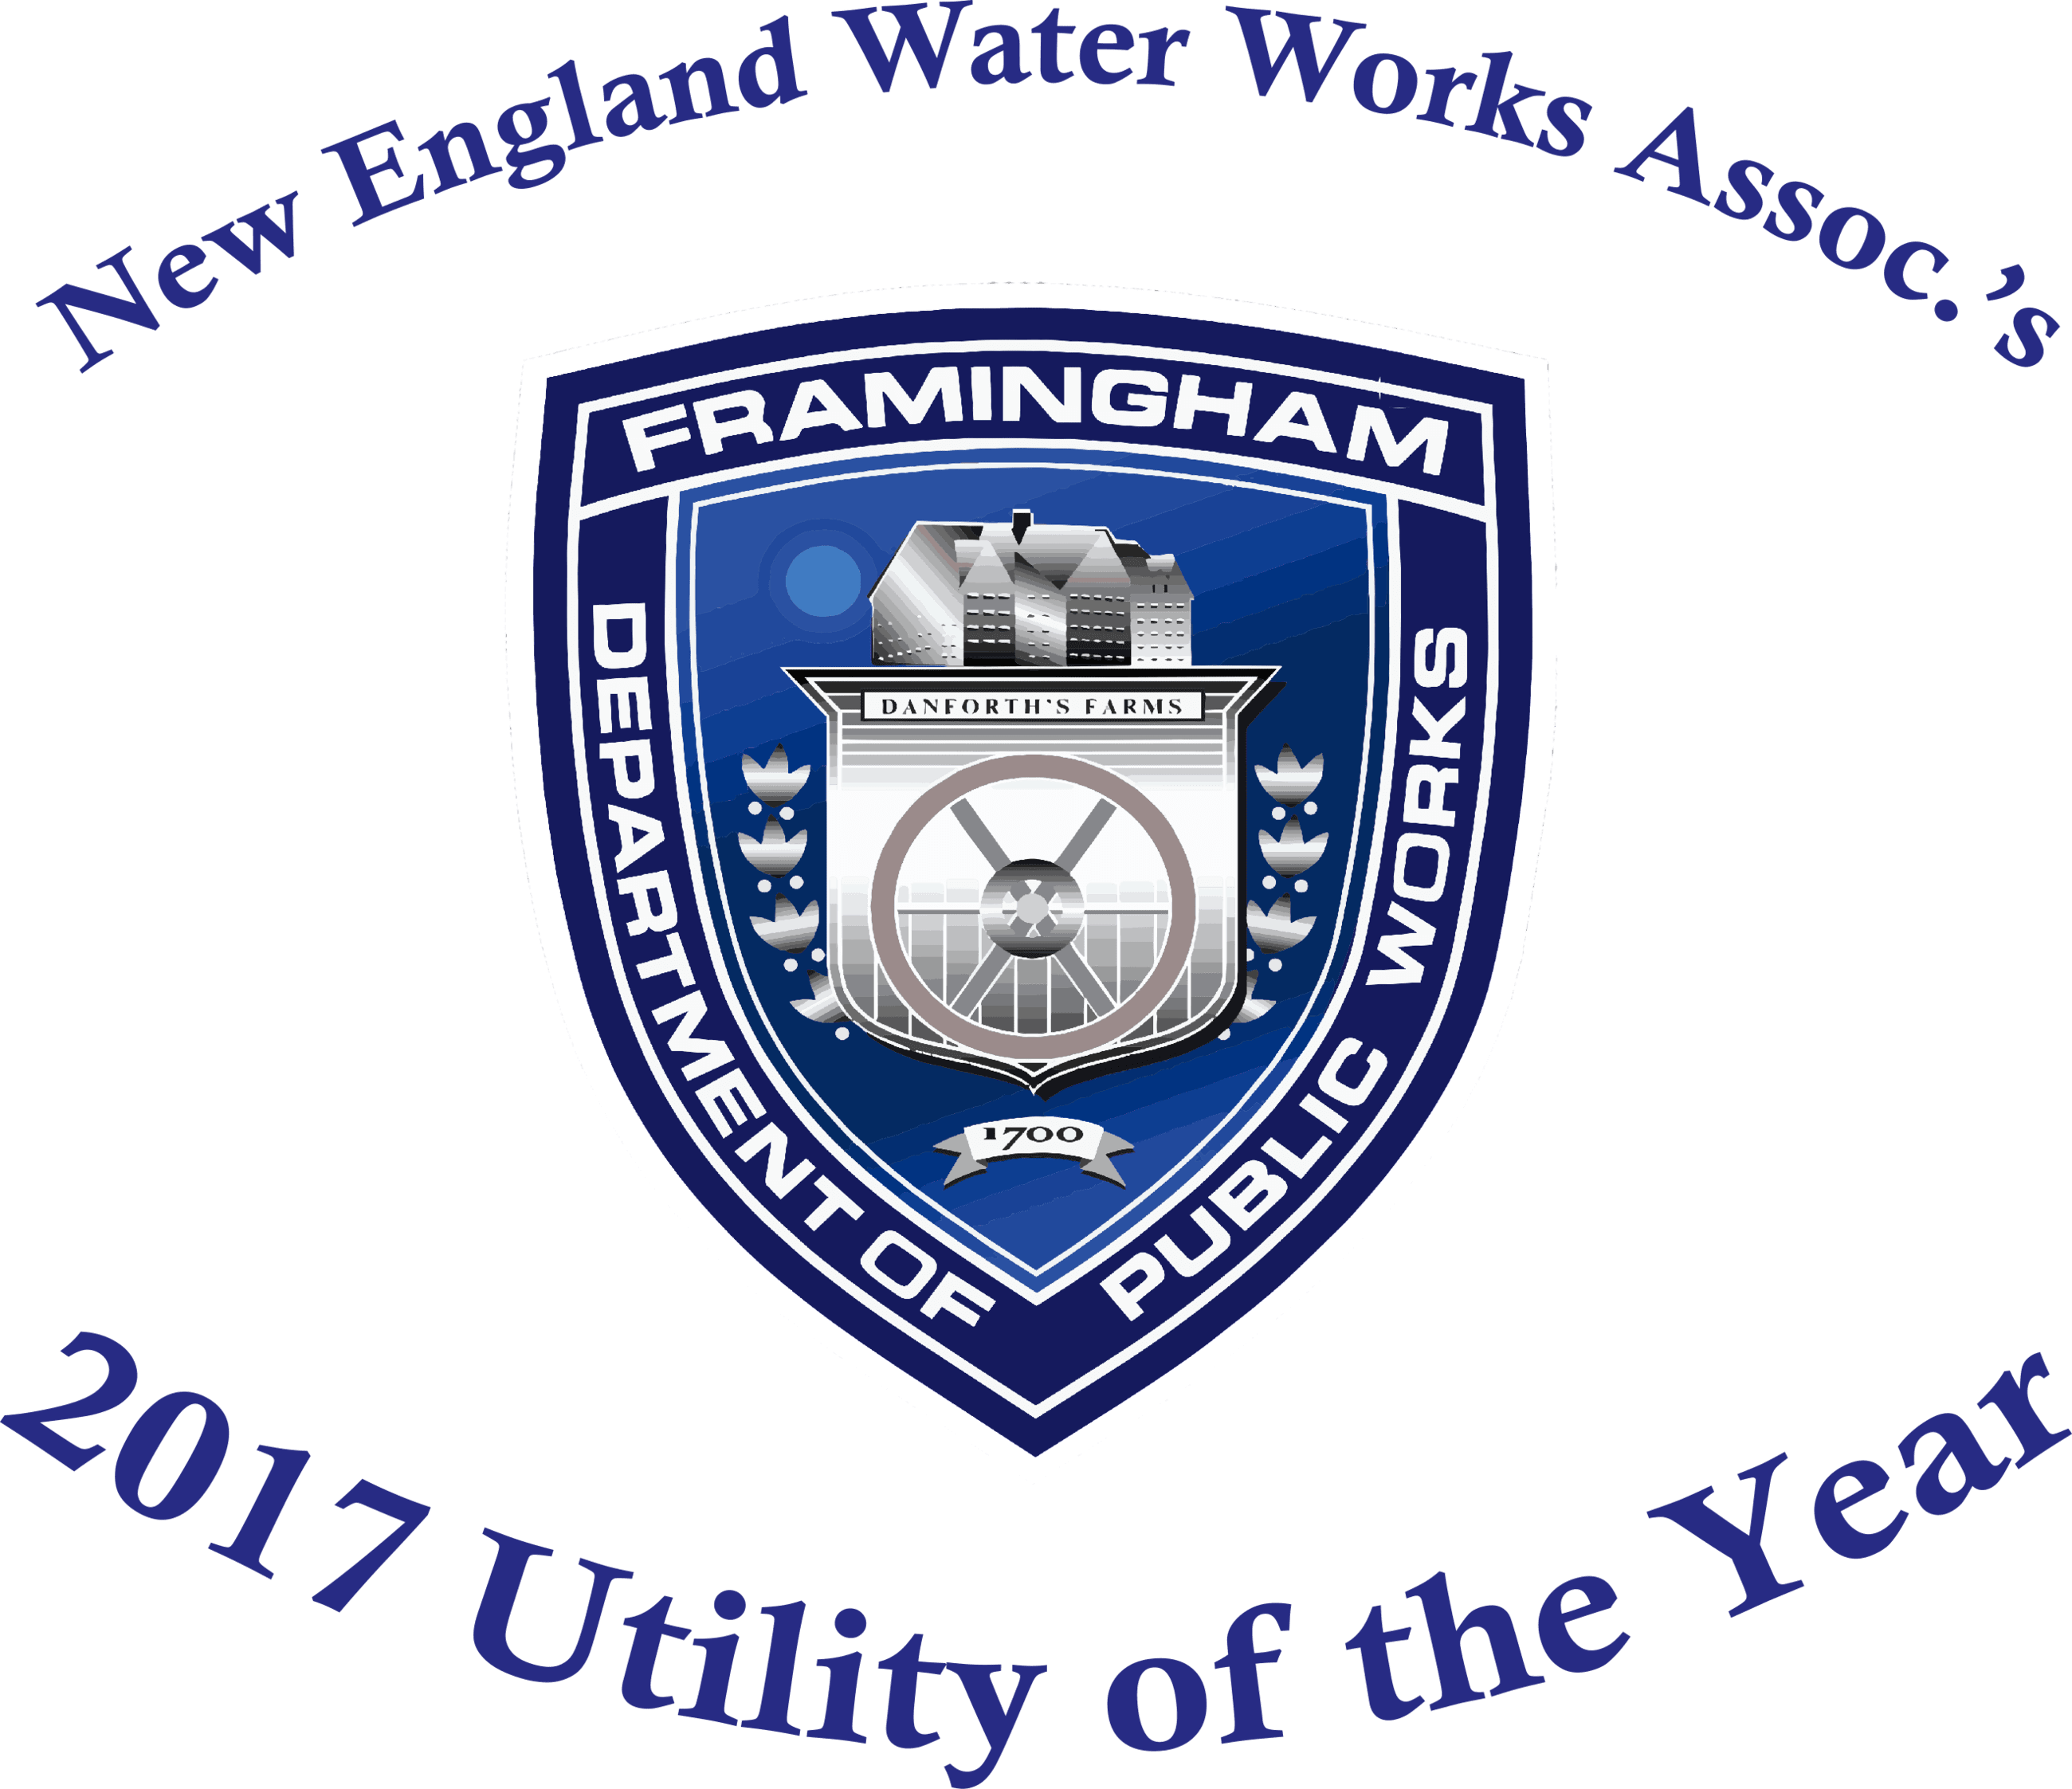 2017 Utility of the year Award